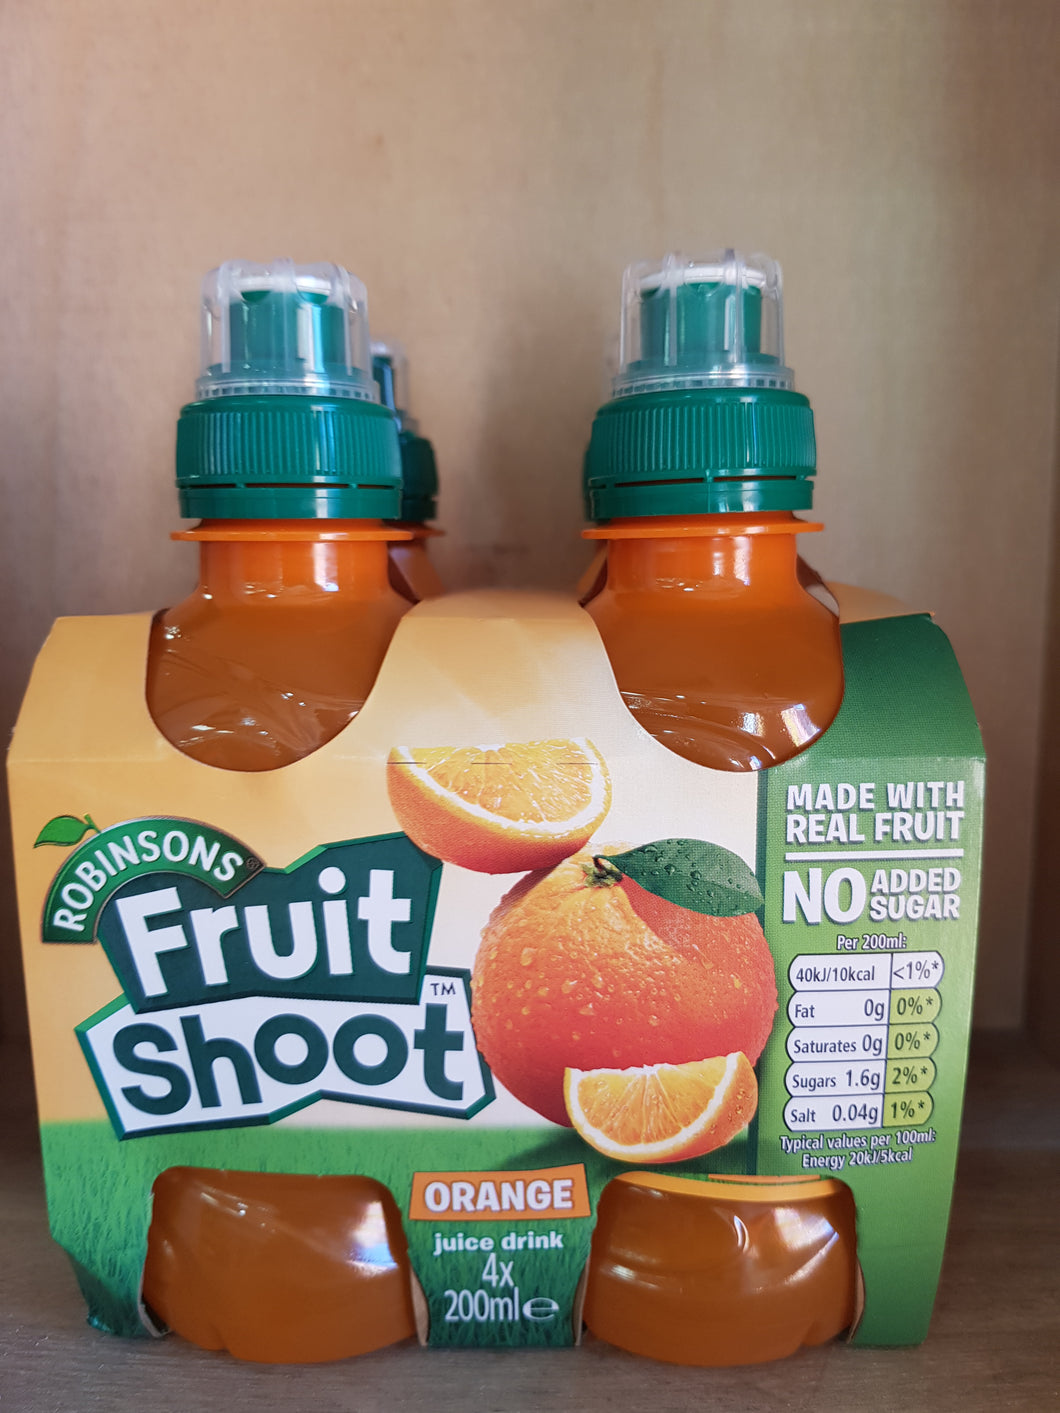 Robinsons Fruit Shoot Orange No Added Sugar 4 x 200ml